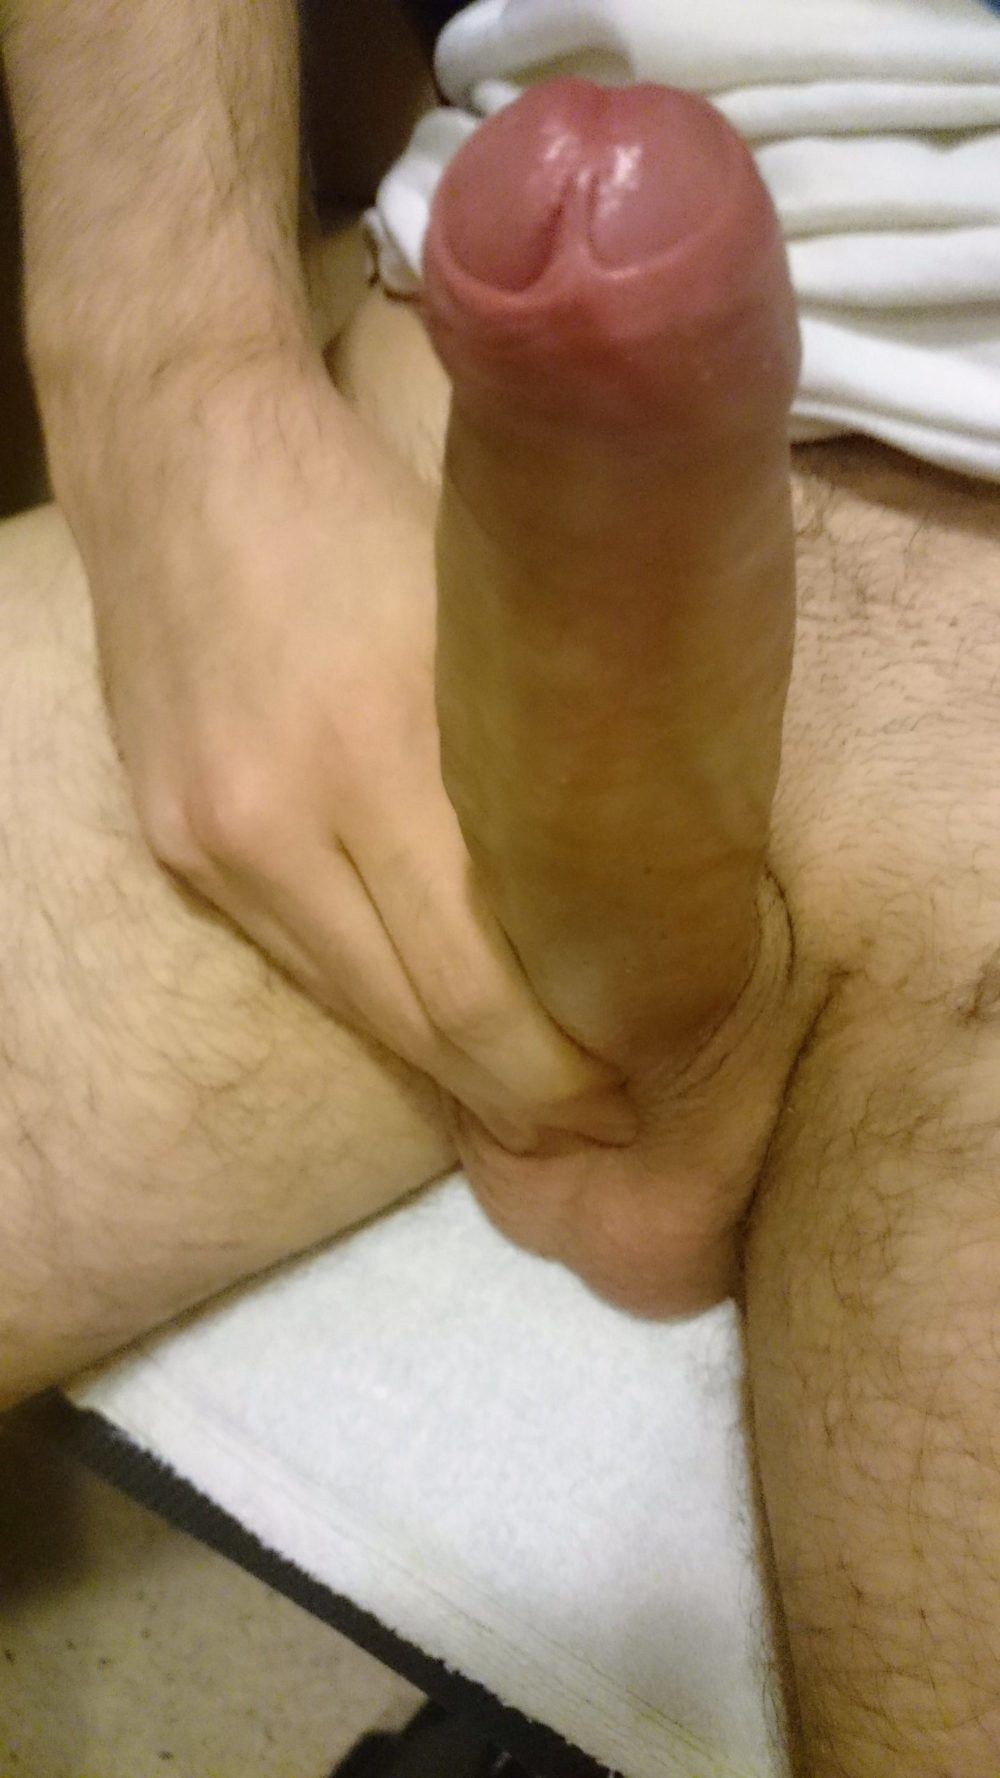 Fat uncut cock, can you betas compare?